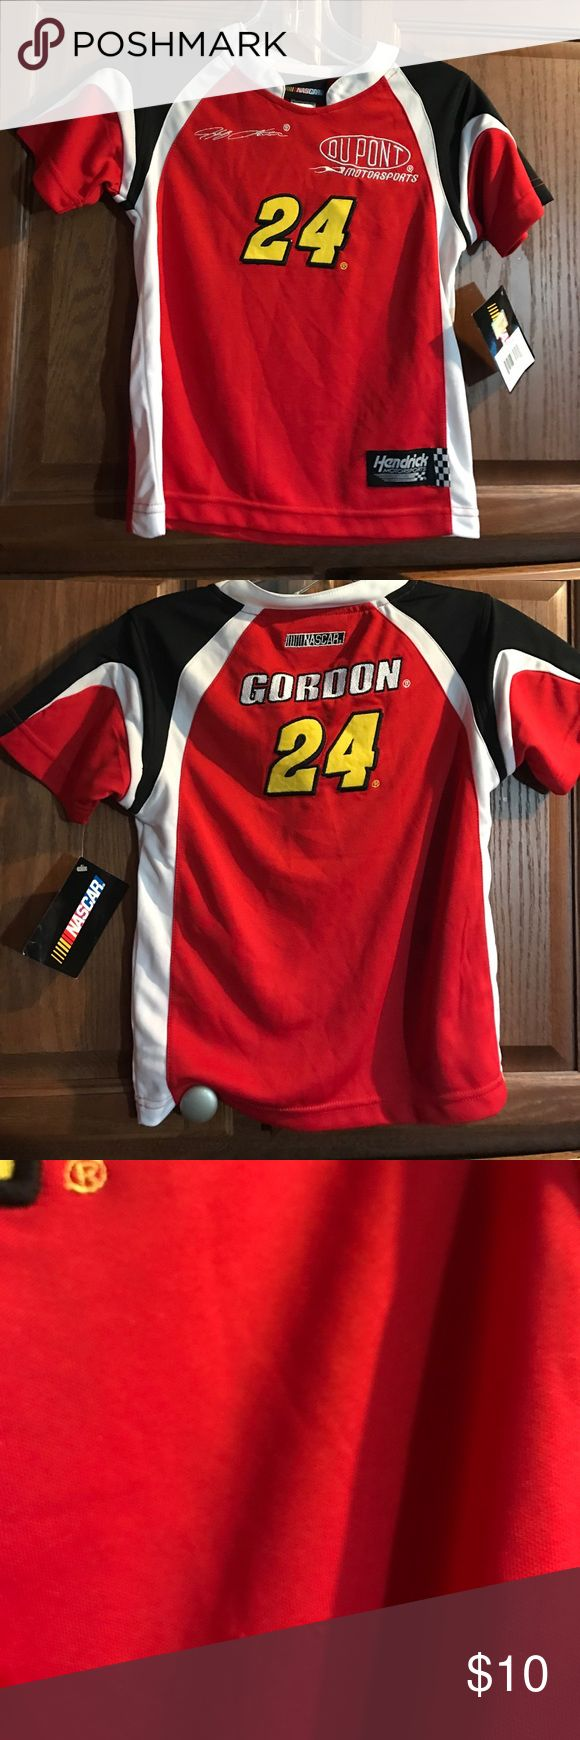 Jeff Gordon Youth Nascar Shirt Size M 5/6 New This is a youth Jeff Gordon jersey shirt!  It is new with tags attached.  Size medium ...  5/6.  There is a couple small picks on the back but you can't really notice them!!!  See picture!! Nascar Shirts & Tops